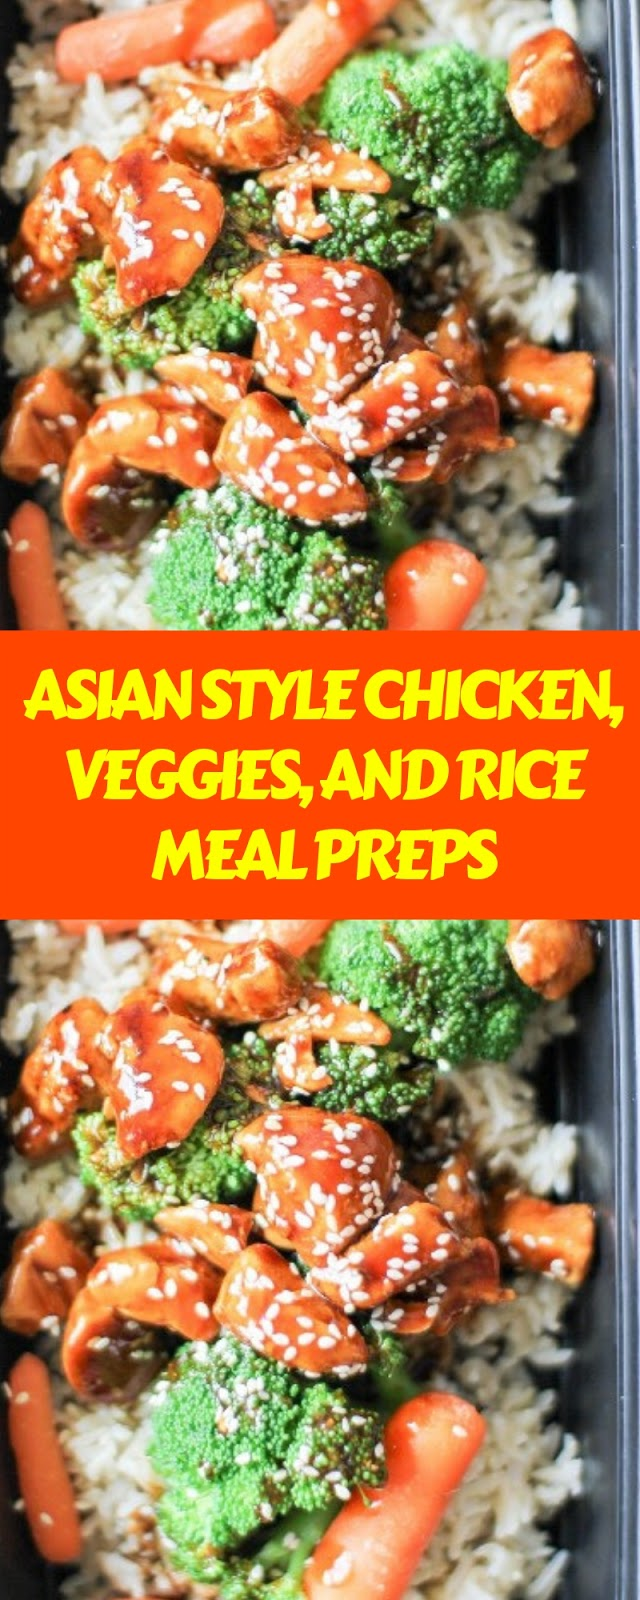 Asian Style Chicken Vegan and Rice Meal Prep